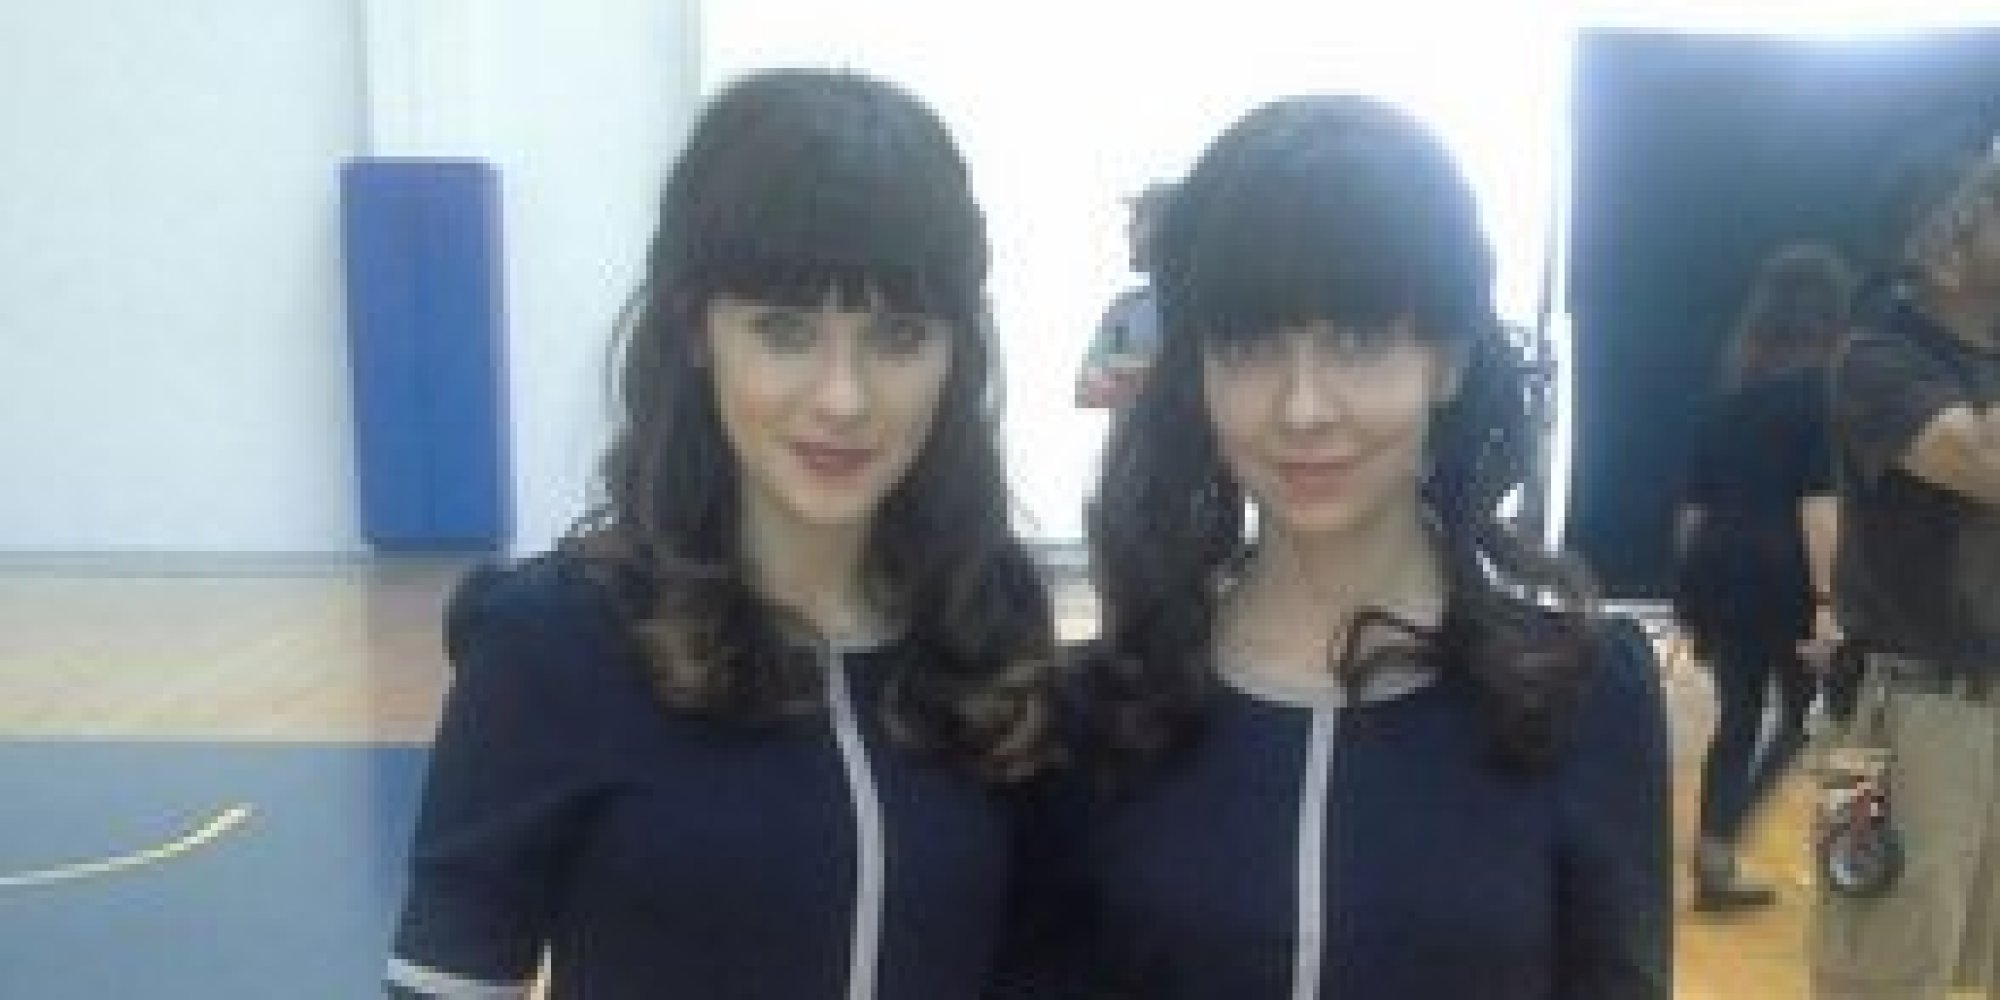 Zooey Deschanel Gigantic Body Double Zooey Deschanel Tweets...